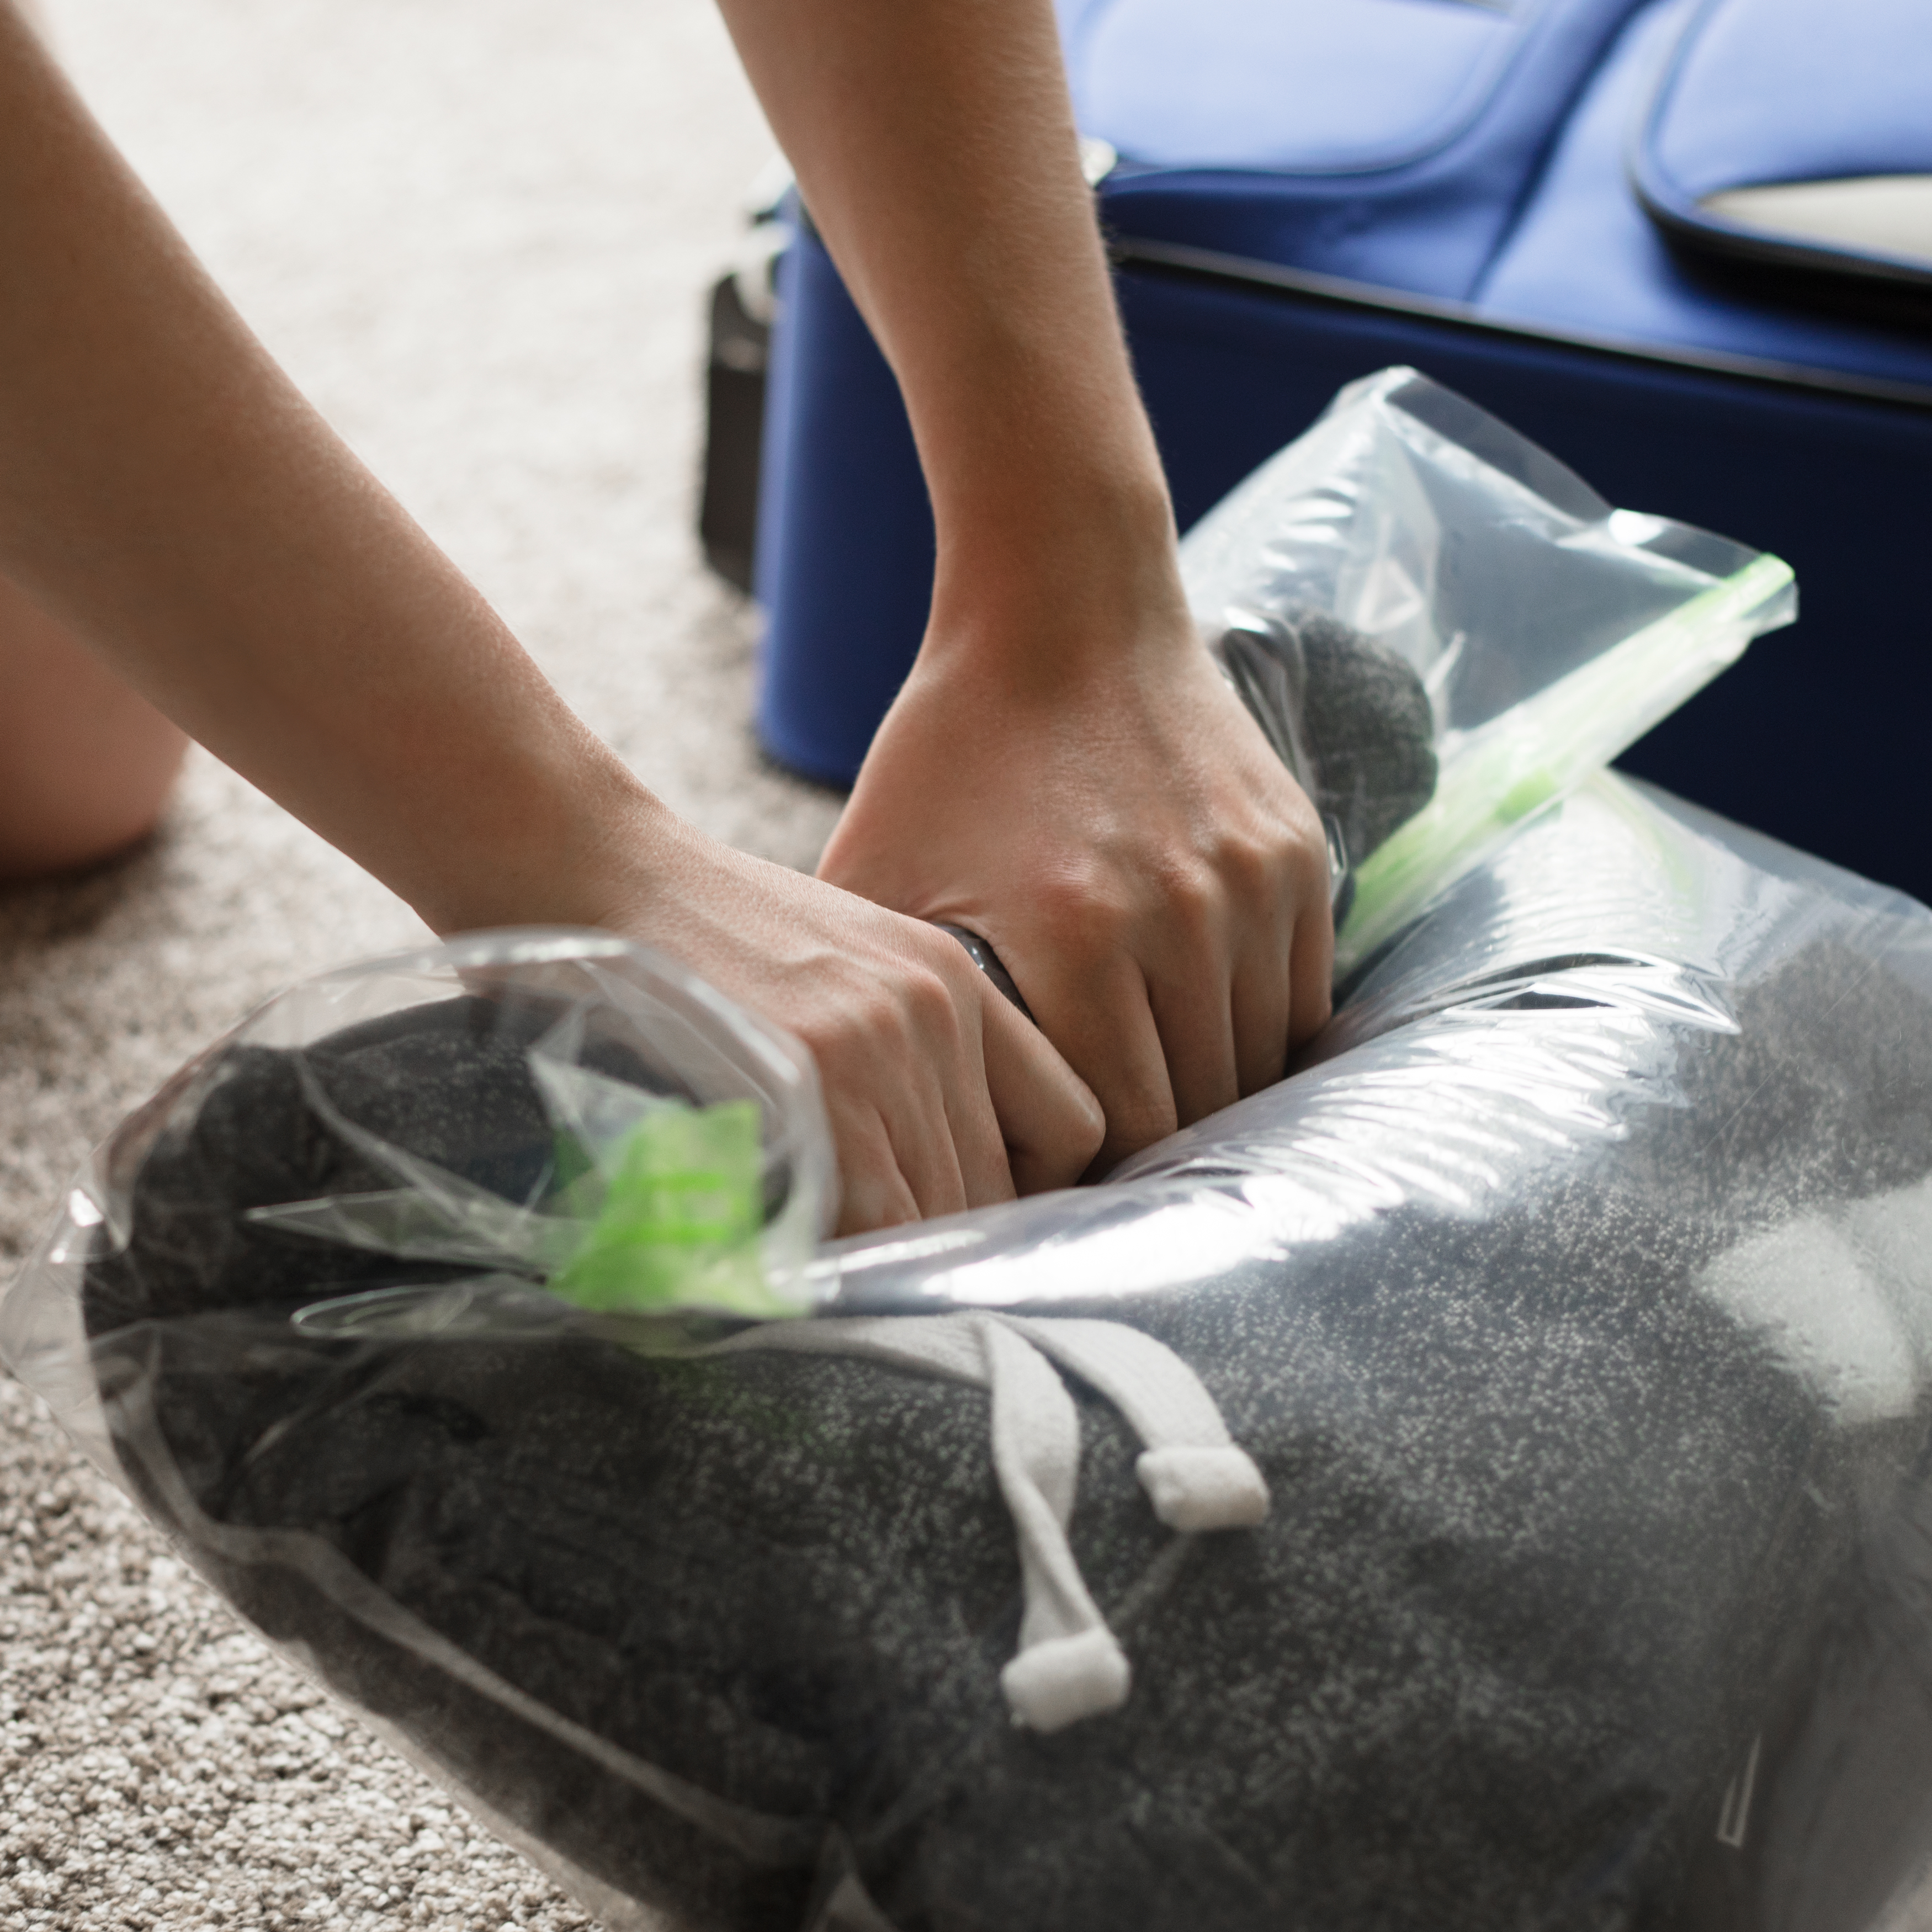 New Acrodo Space Saver Compression Bags 3 Pack For Packing And Hand Rolling Compressed Bag Storage No Vacuum Ziplock